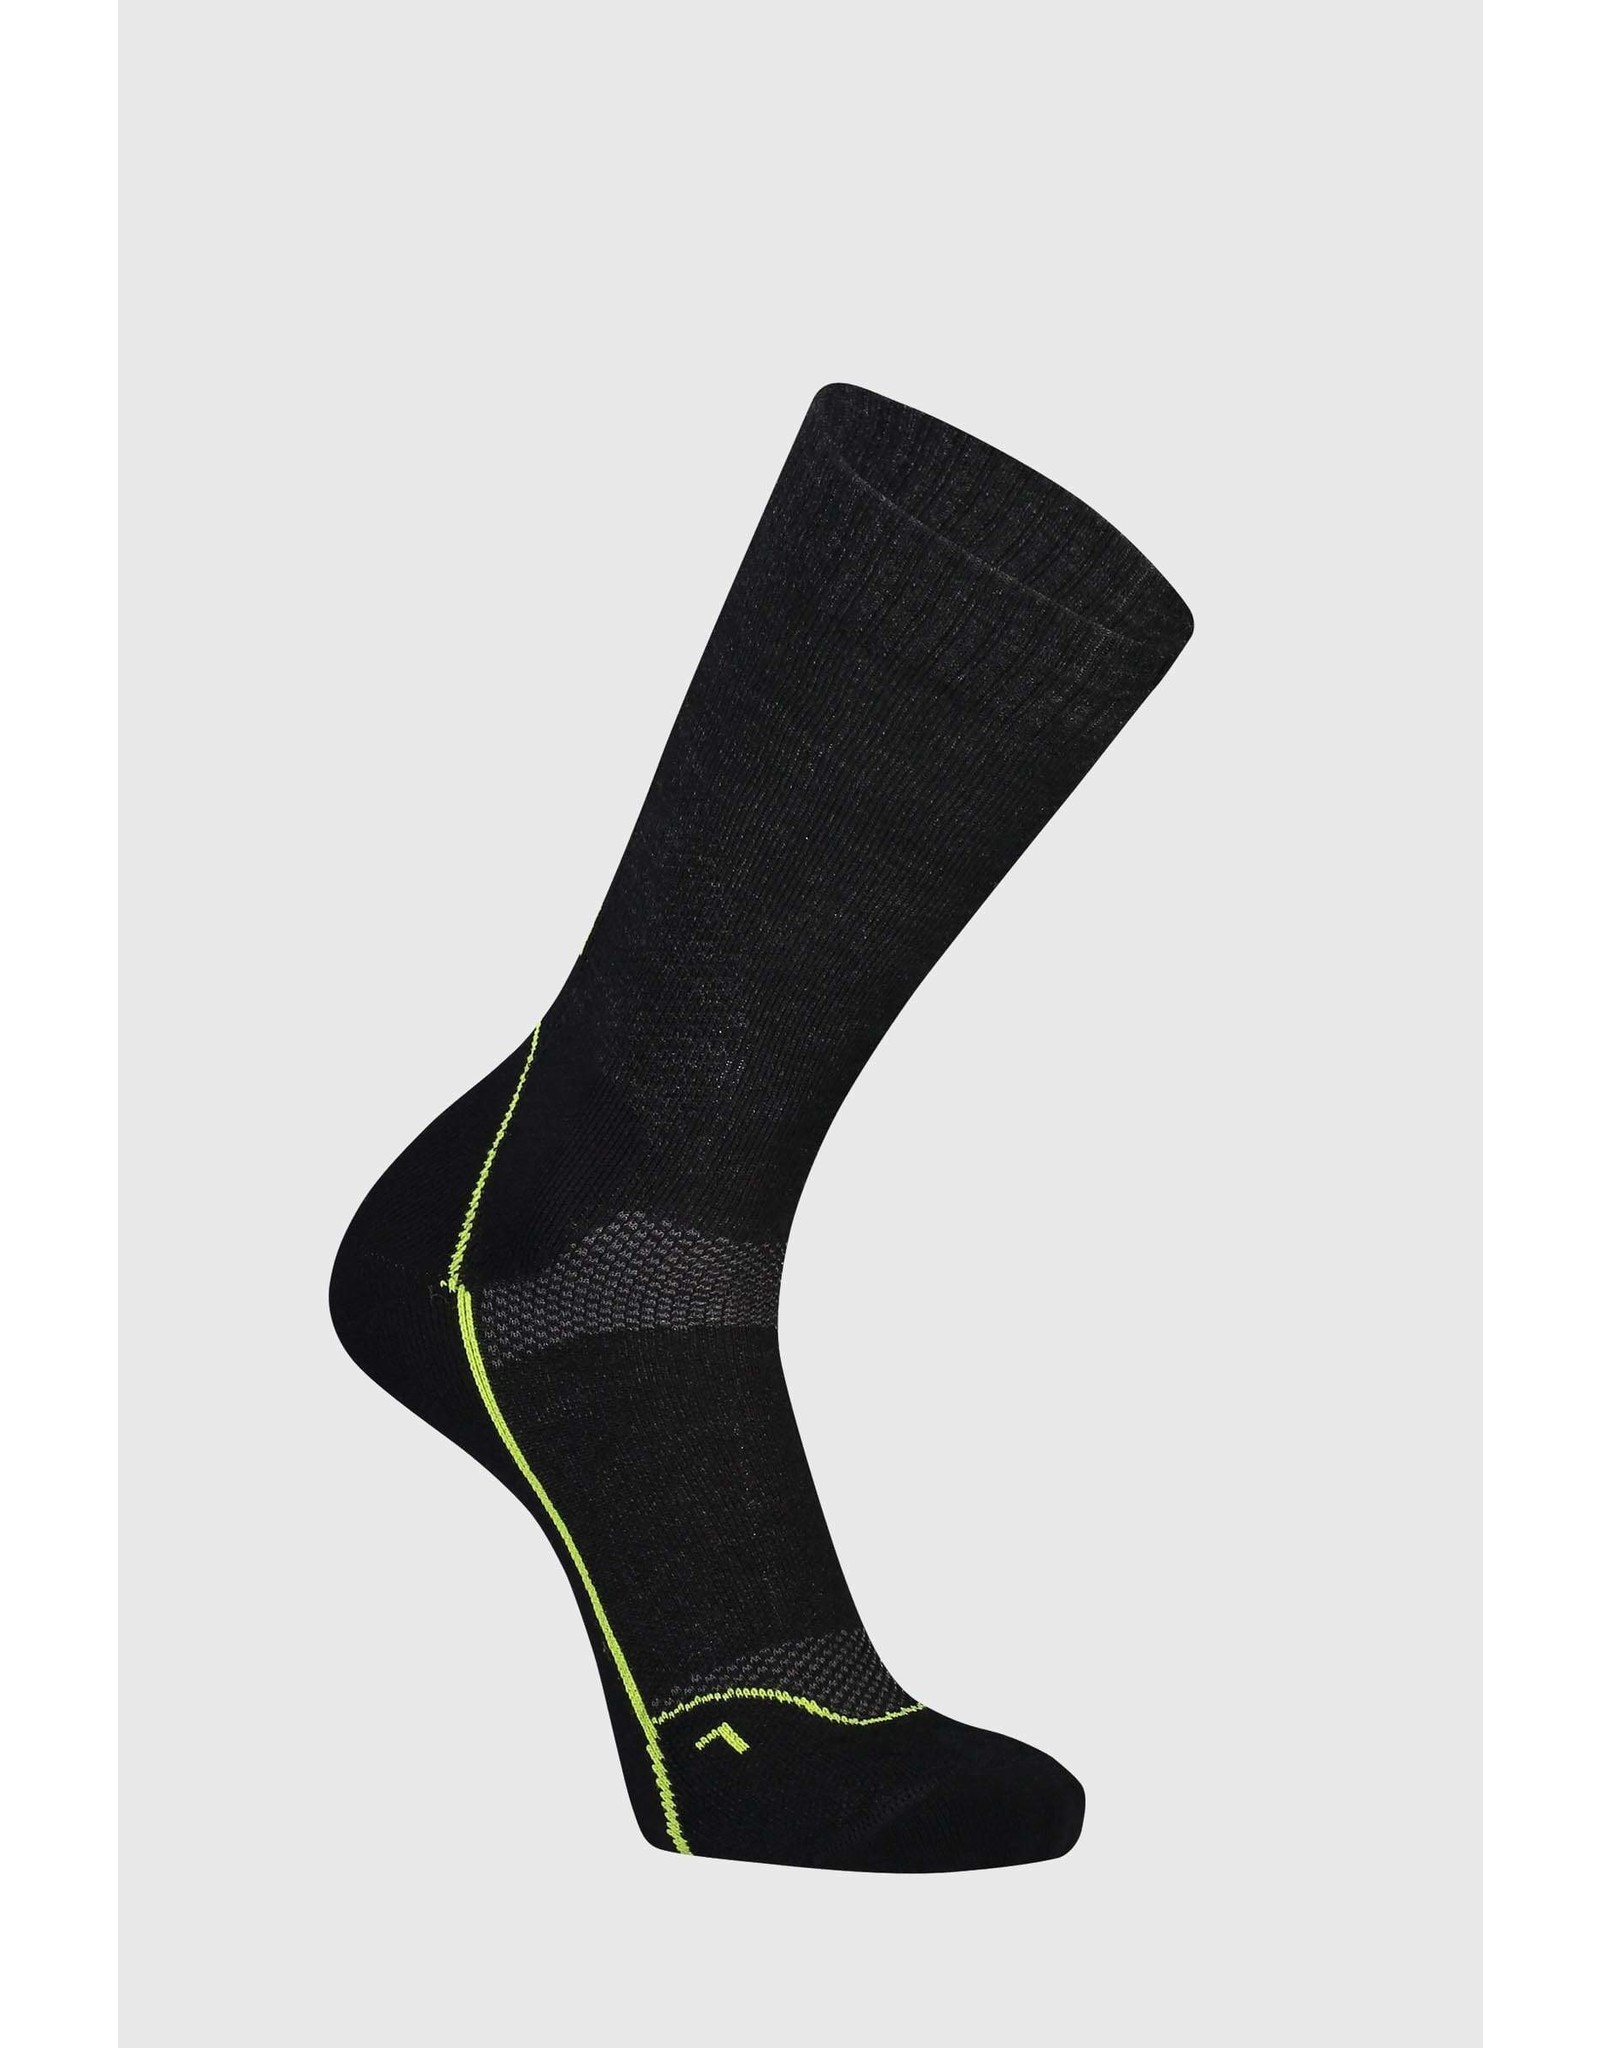 "Mons Royale Mons Royale Men's MTB 9"" Tech Sock Black"